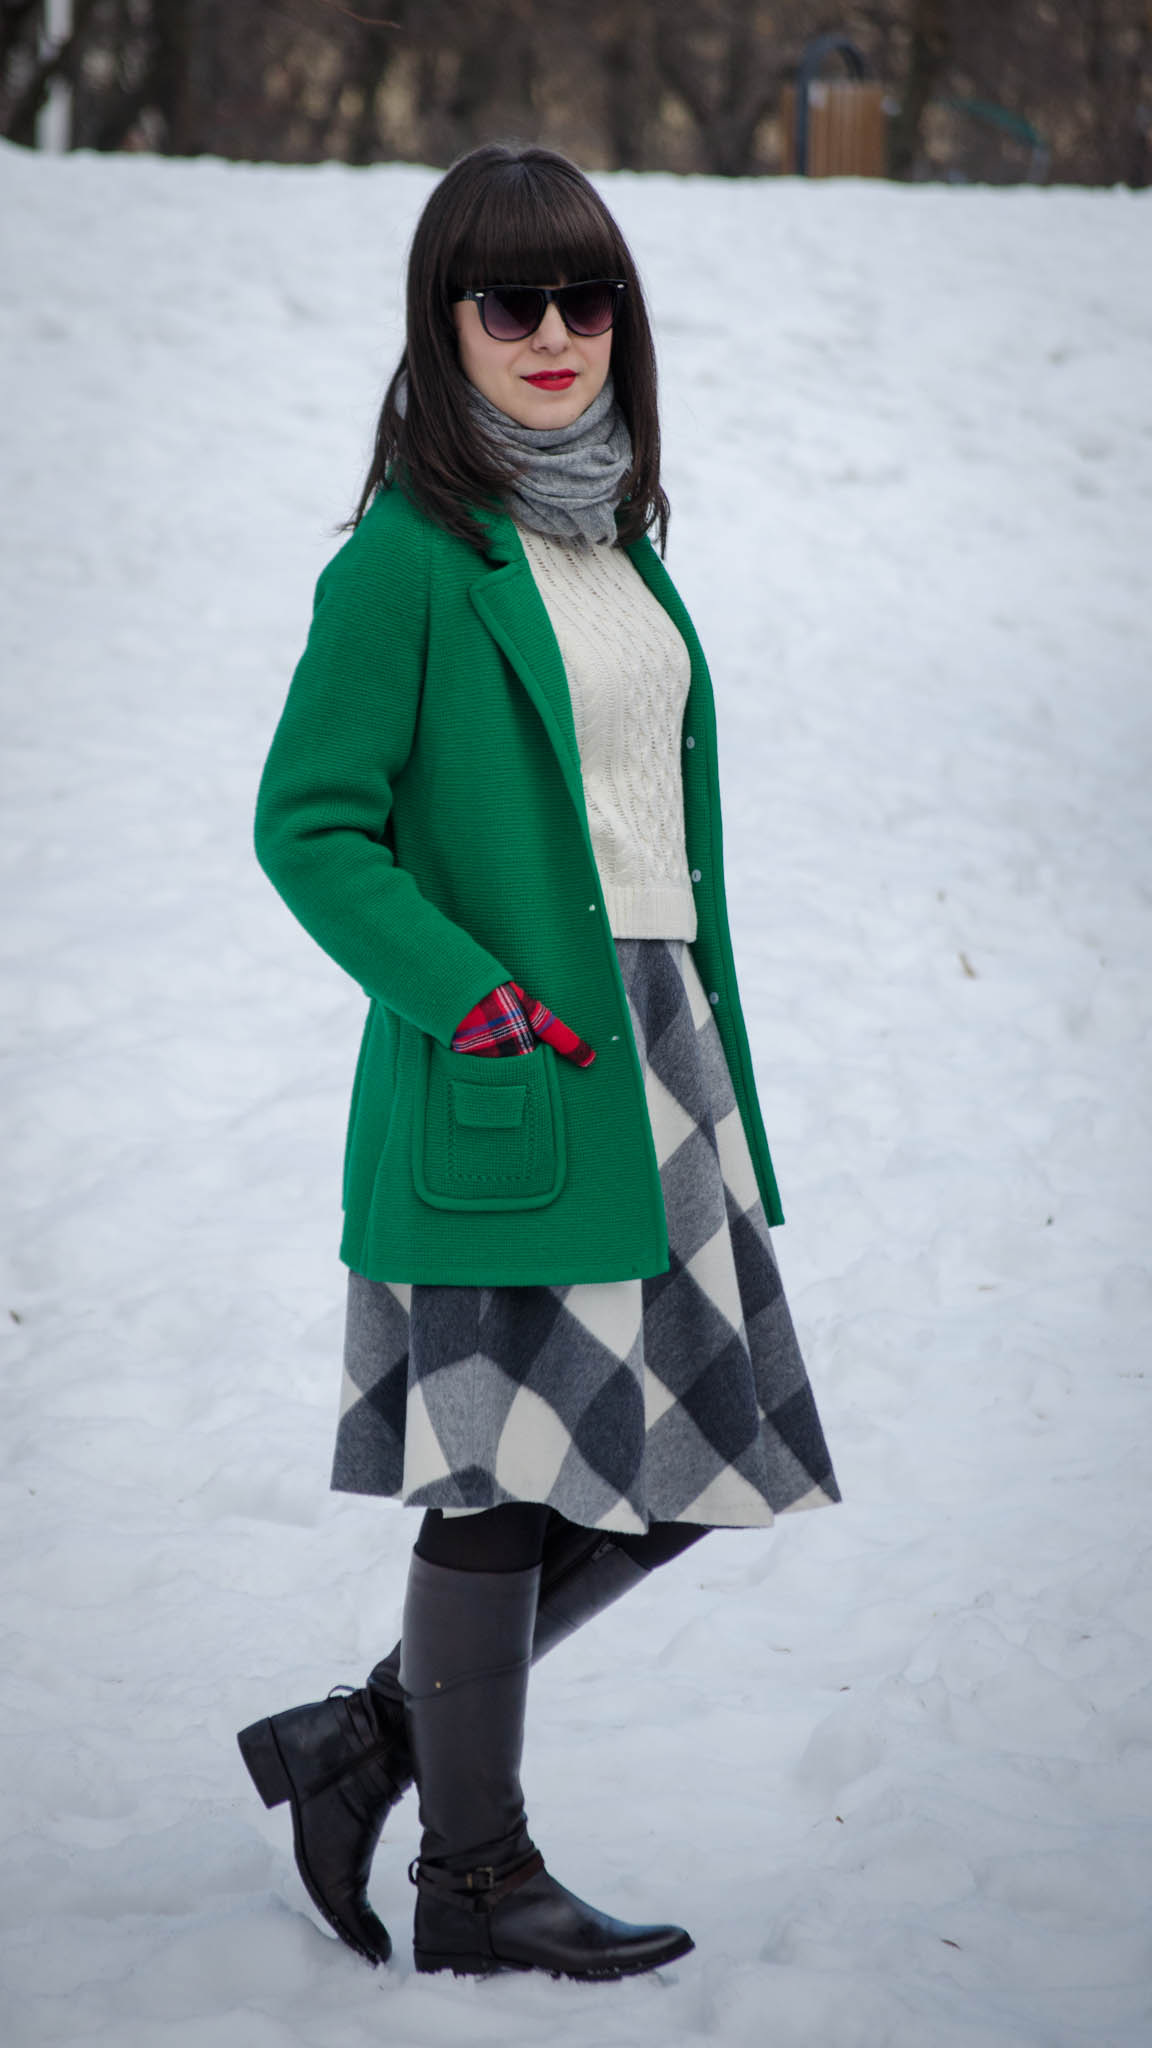 black & white squared thrifted skirt oversized green sweater white h&m sweater brown bata boots tartan koton gloves winter snow bangs grey scarf